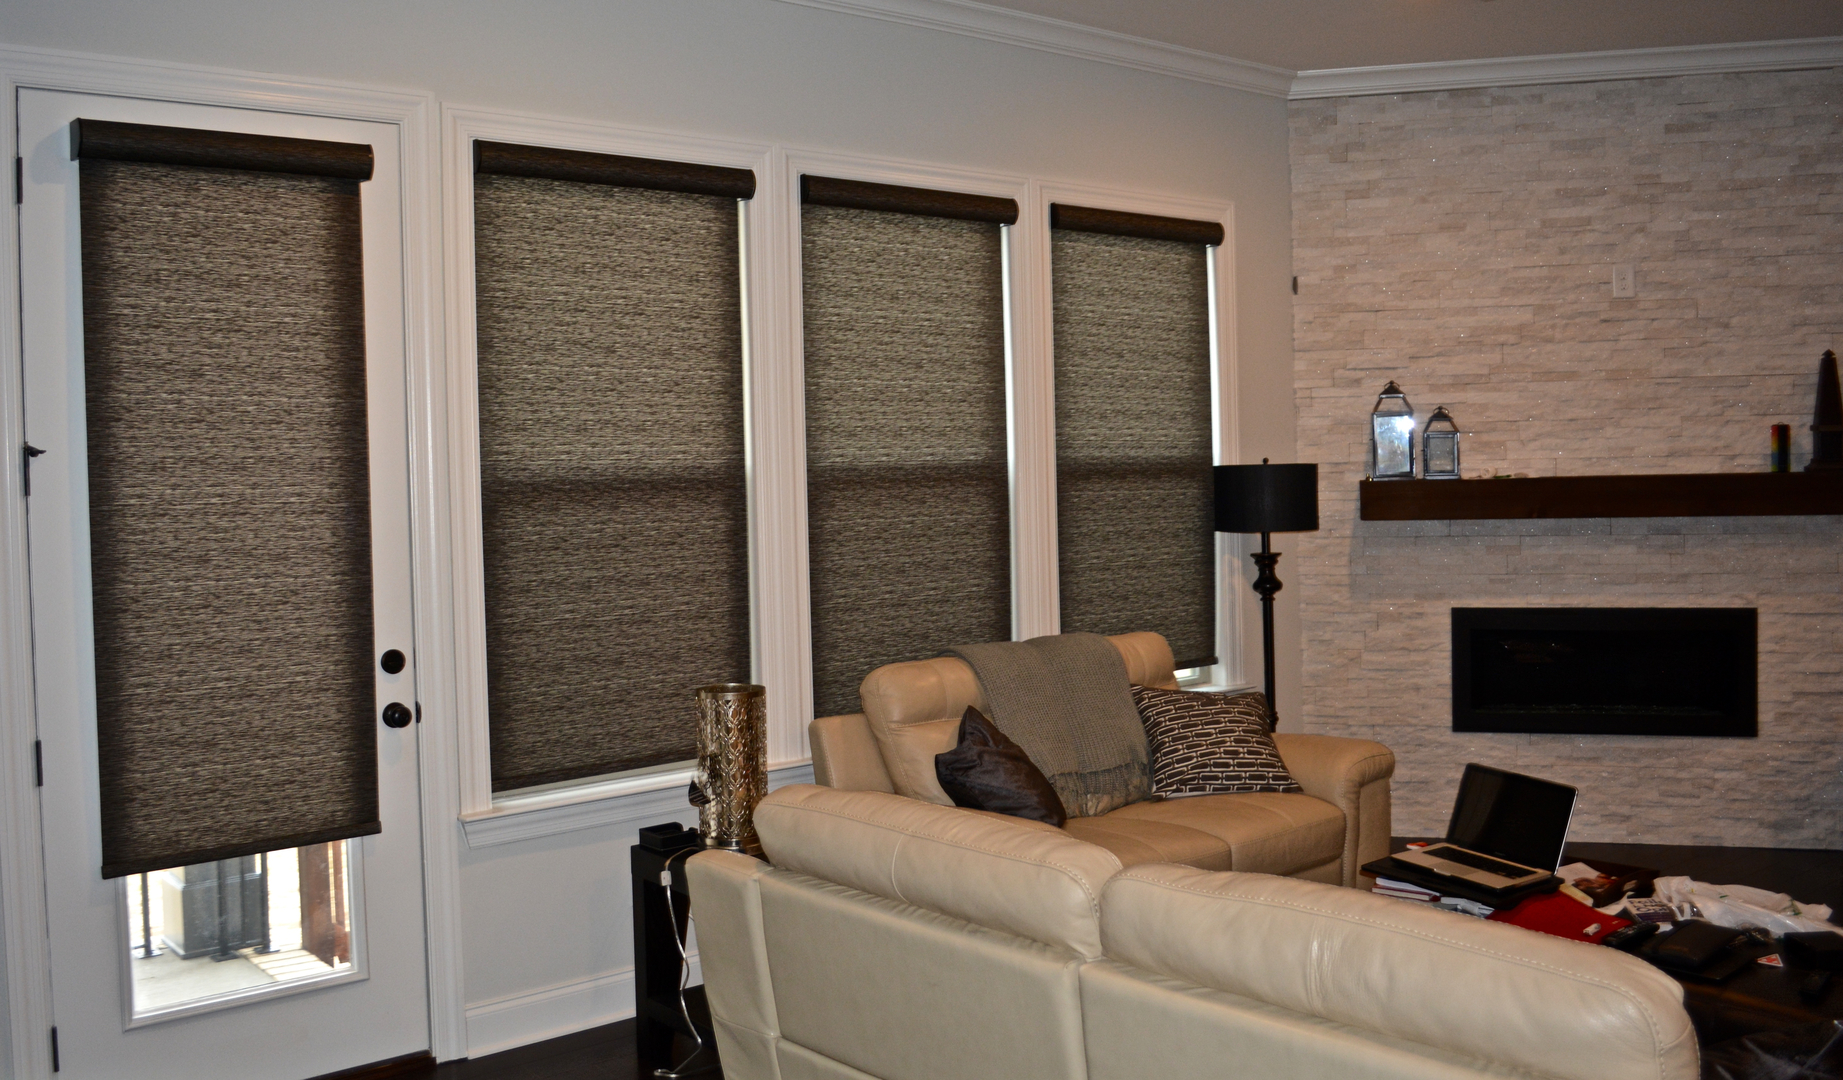 interiormp masterpieces lafayette shades lif drapery horizon shutters phoenix select blinds